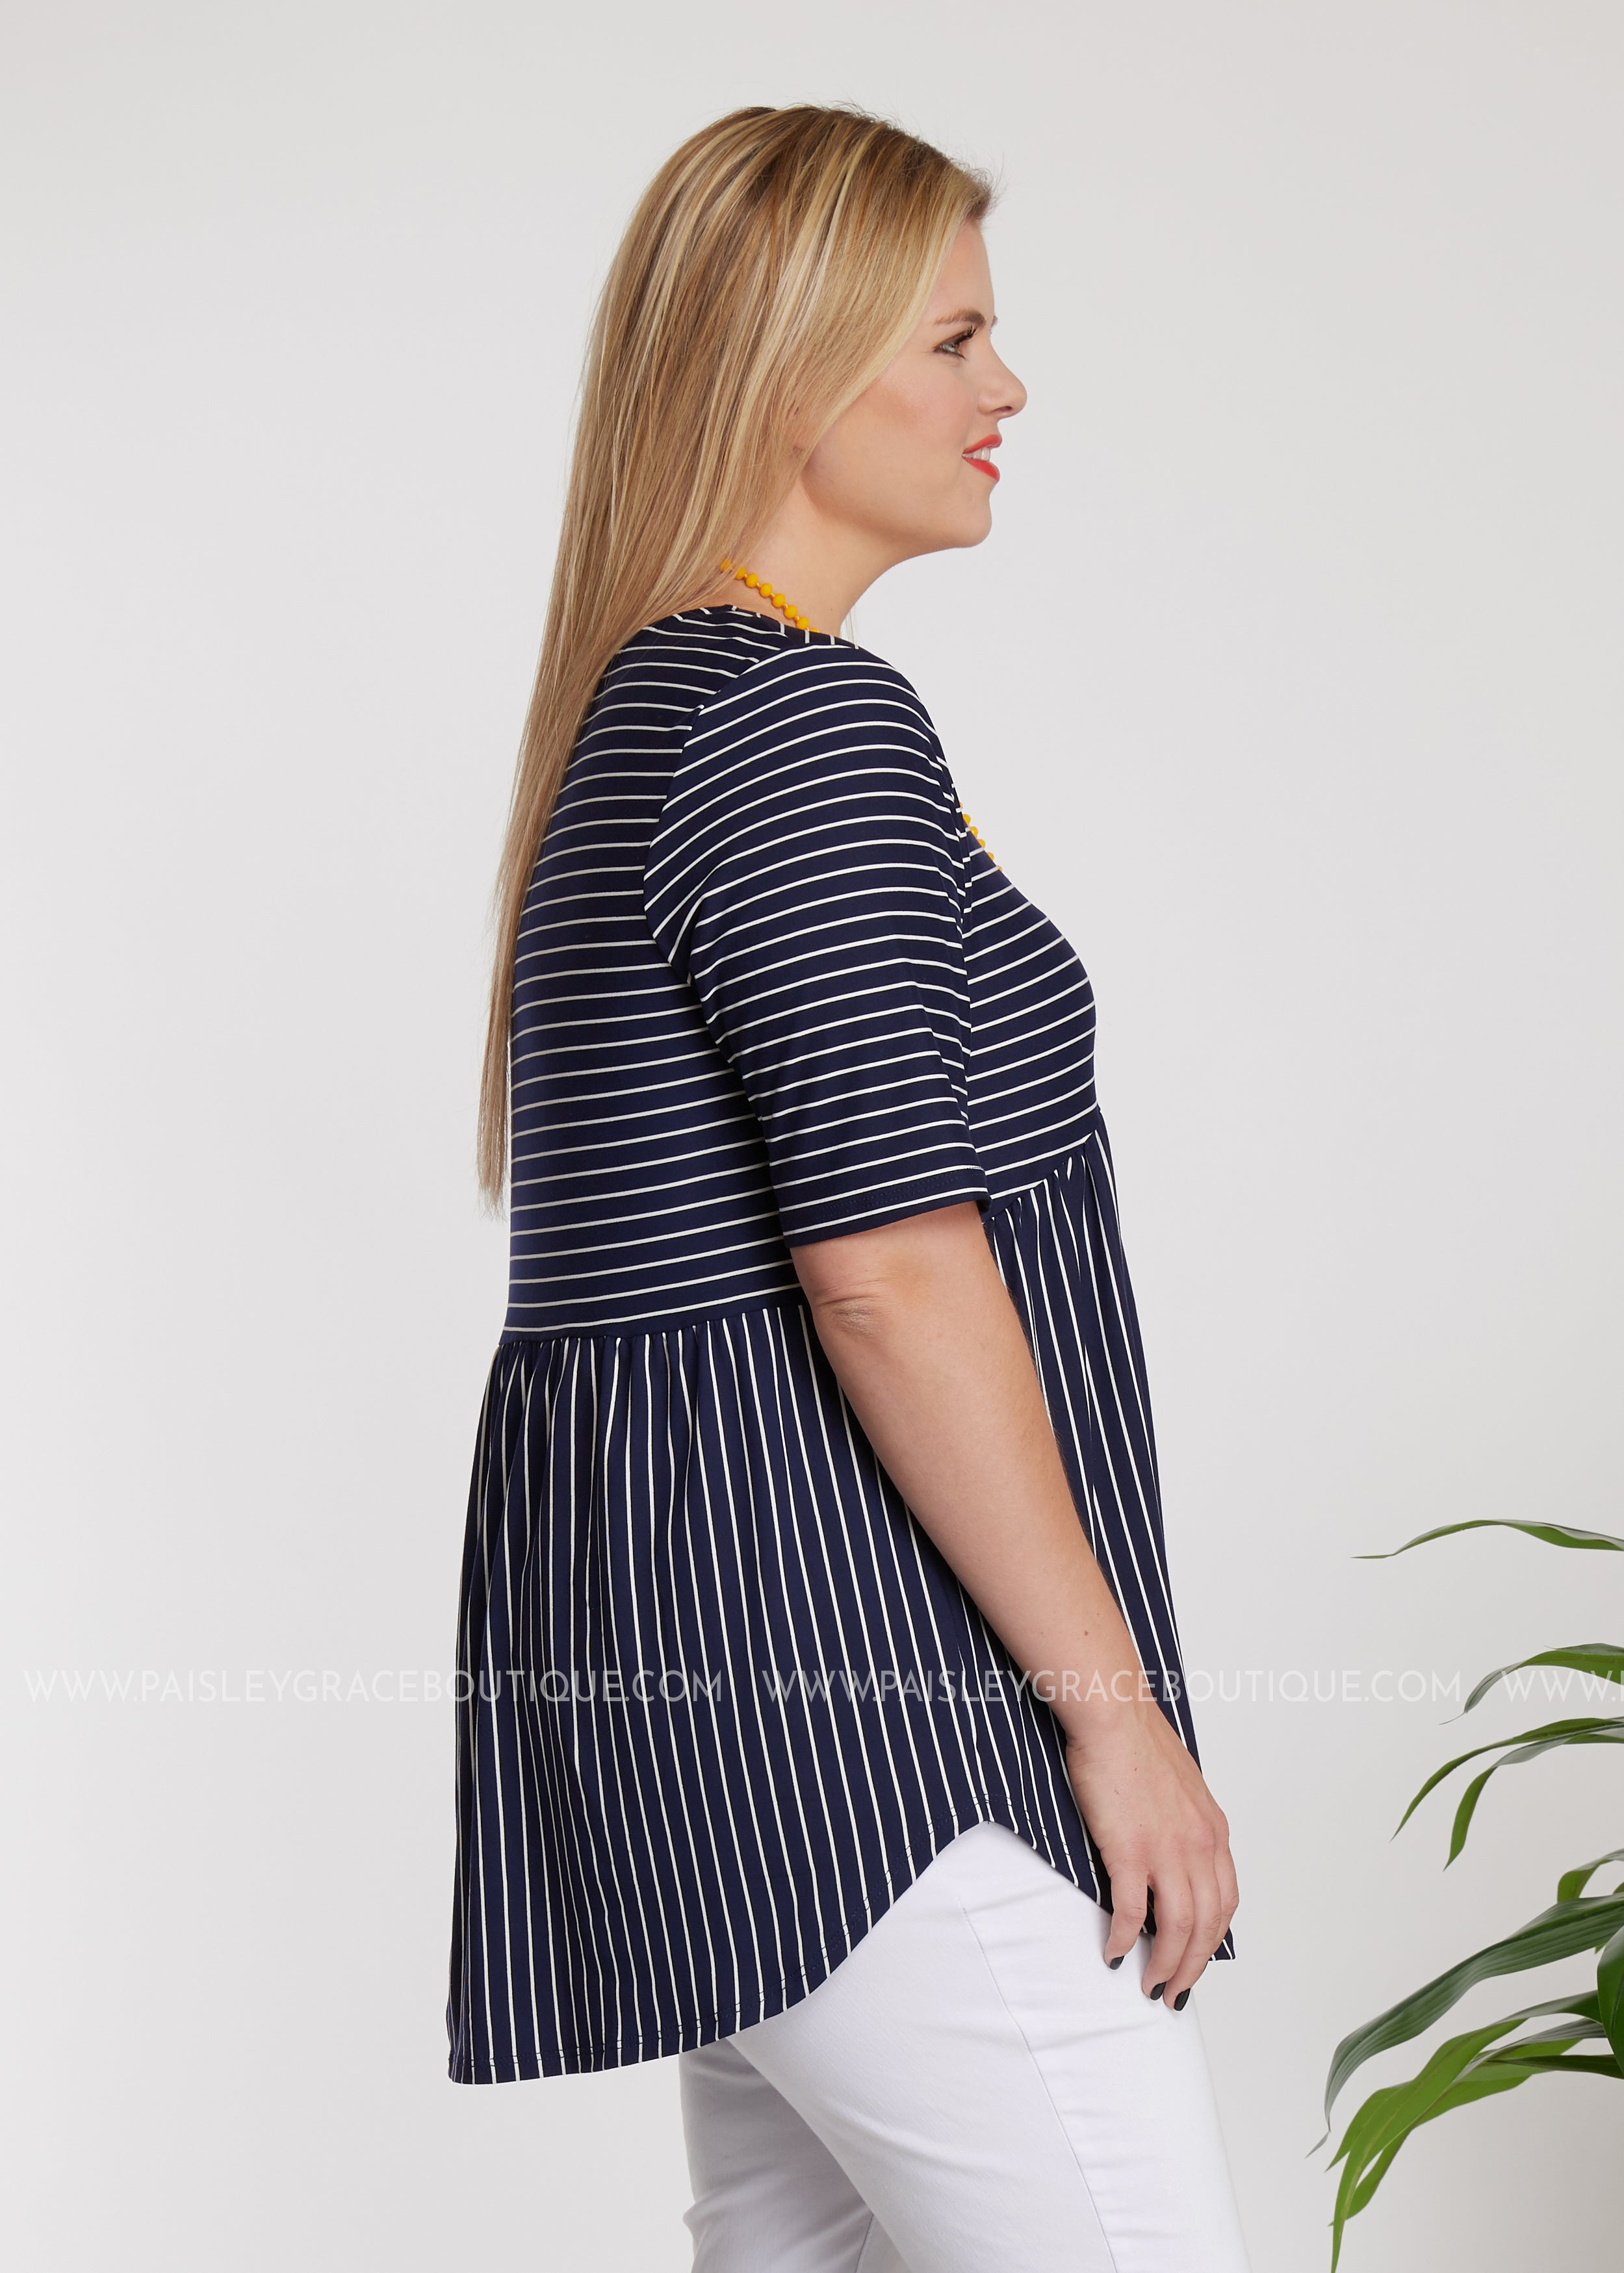 Chasing You Top- NAVY-RESTOCK